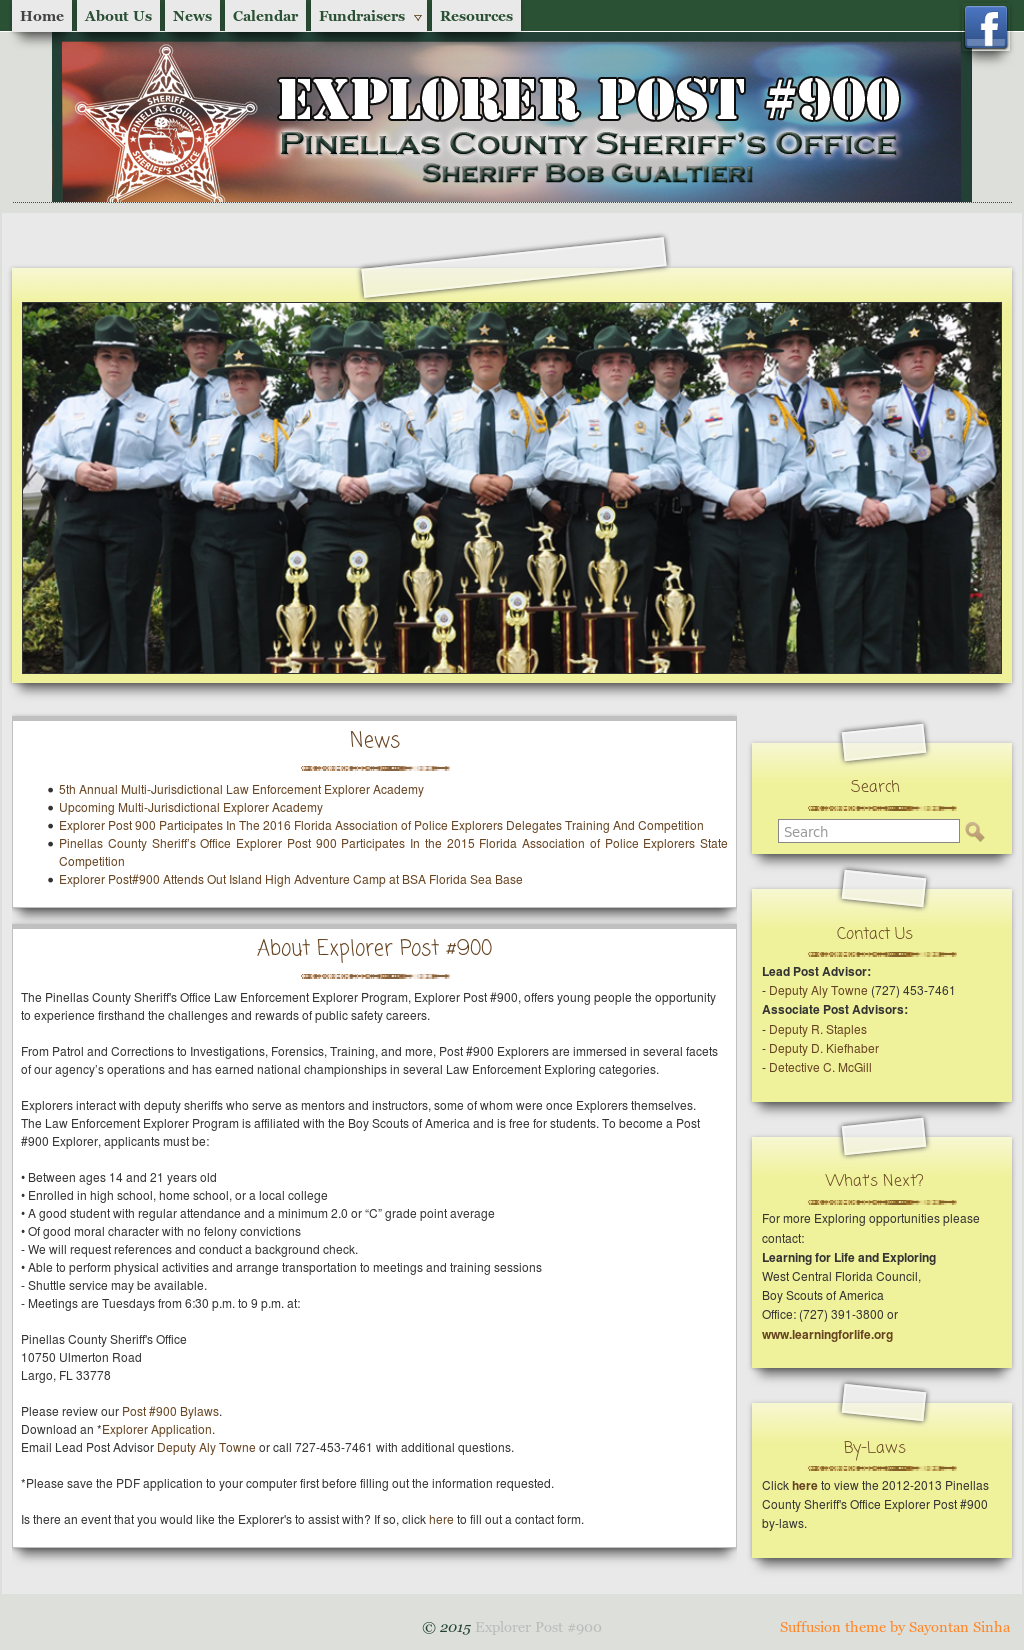 Pinellas County Sheriff's Office Explorer Post #900